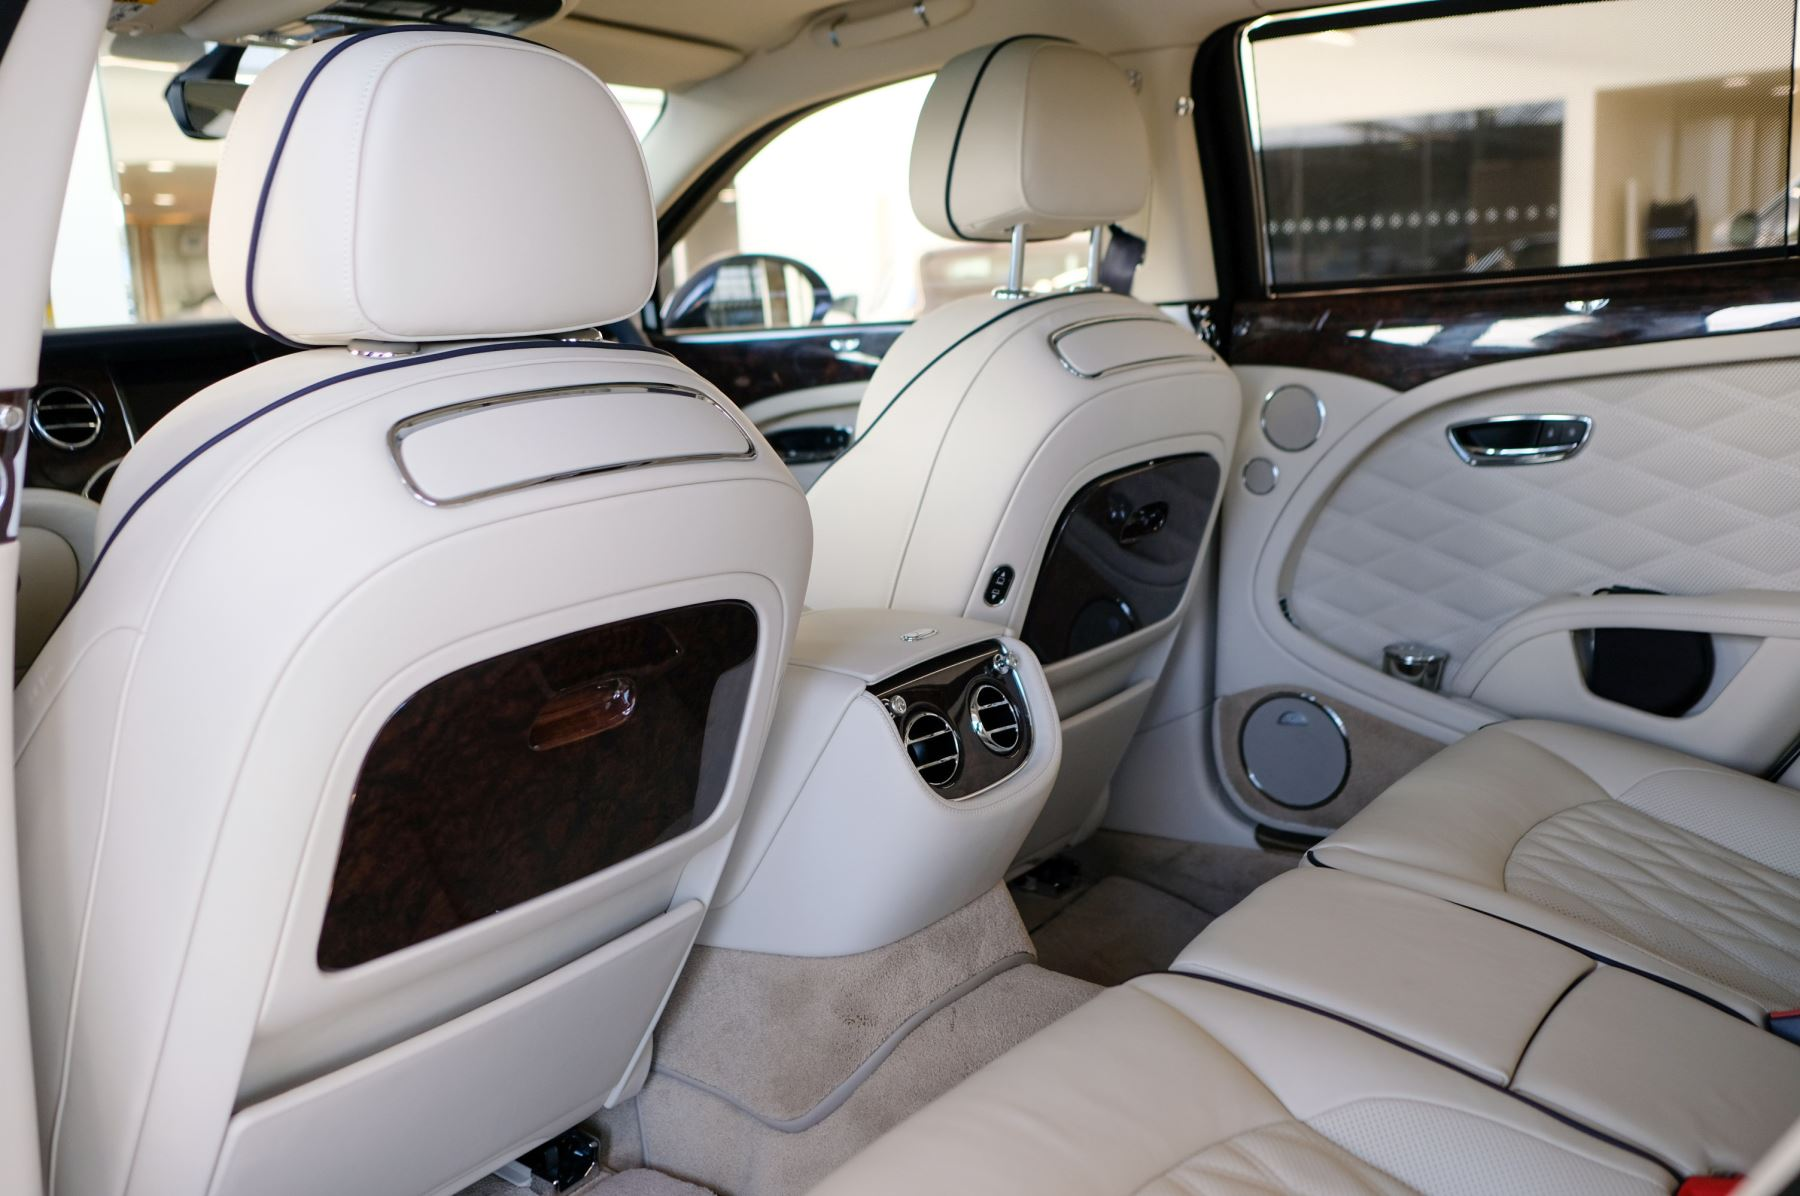 Bentley Mulsanne Speed 6.8 V8 Speed - Speed Premier, Entertainment and Comfort Specification image 12